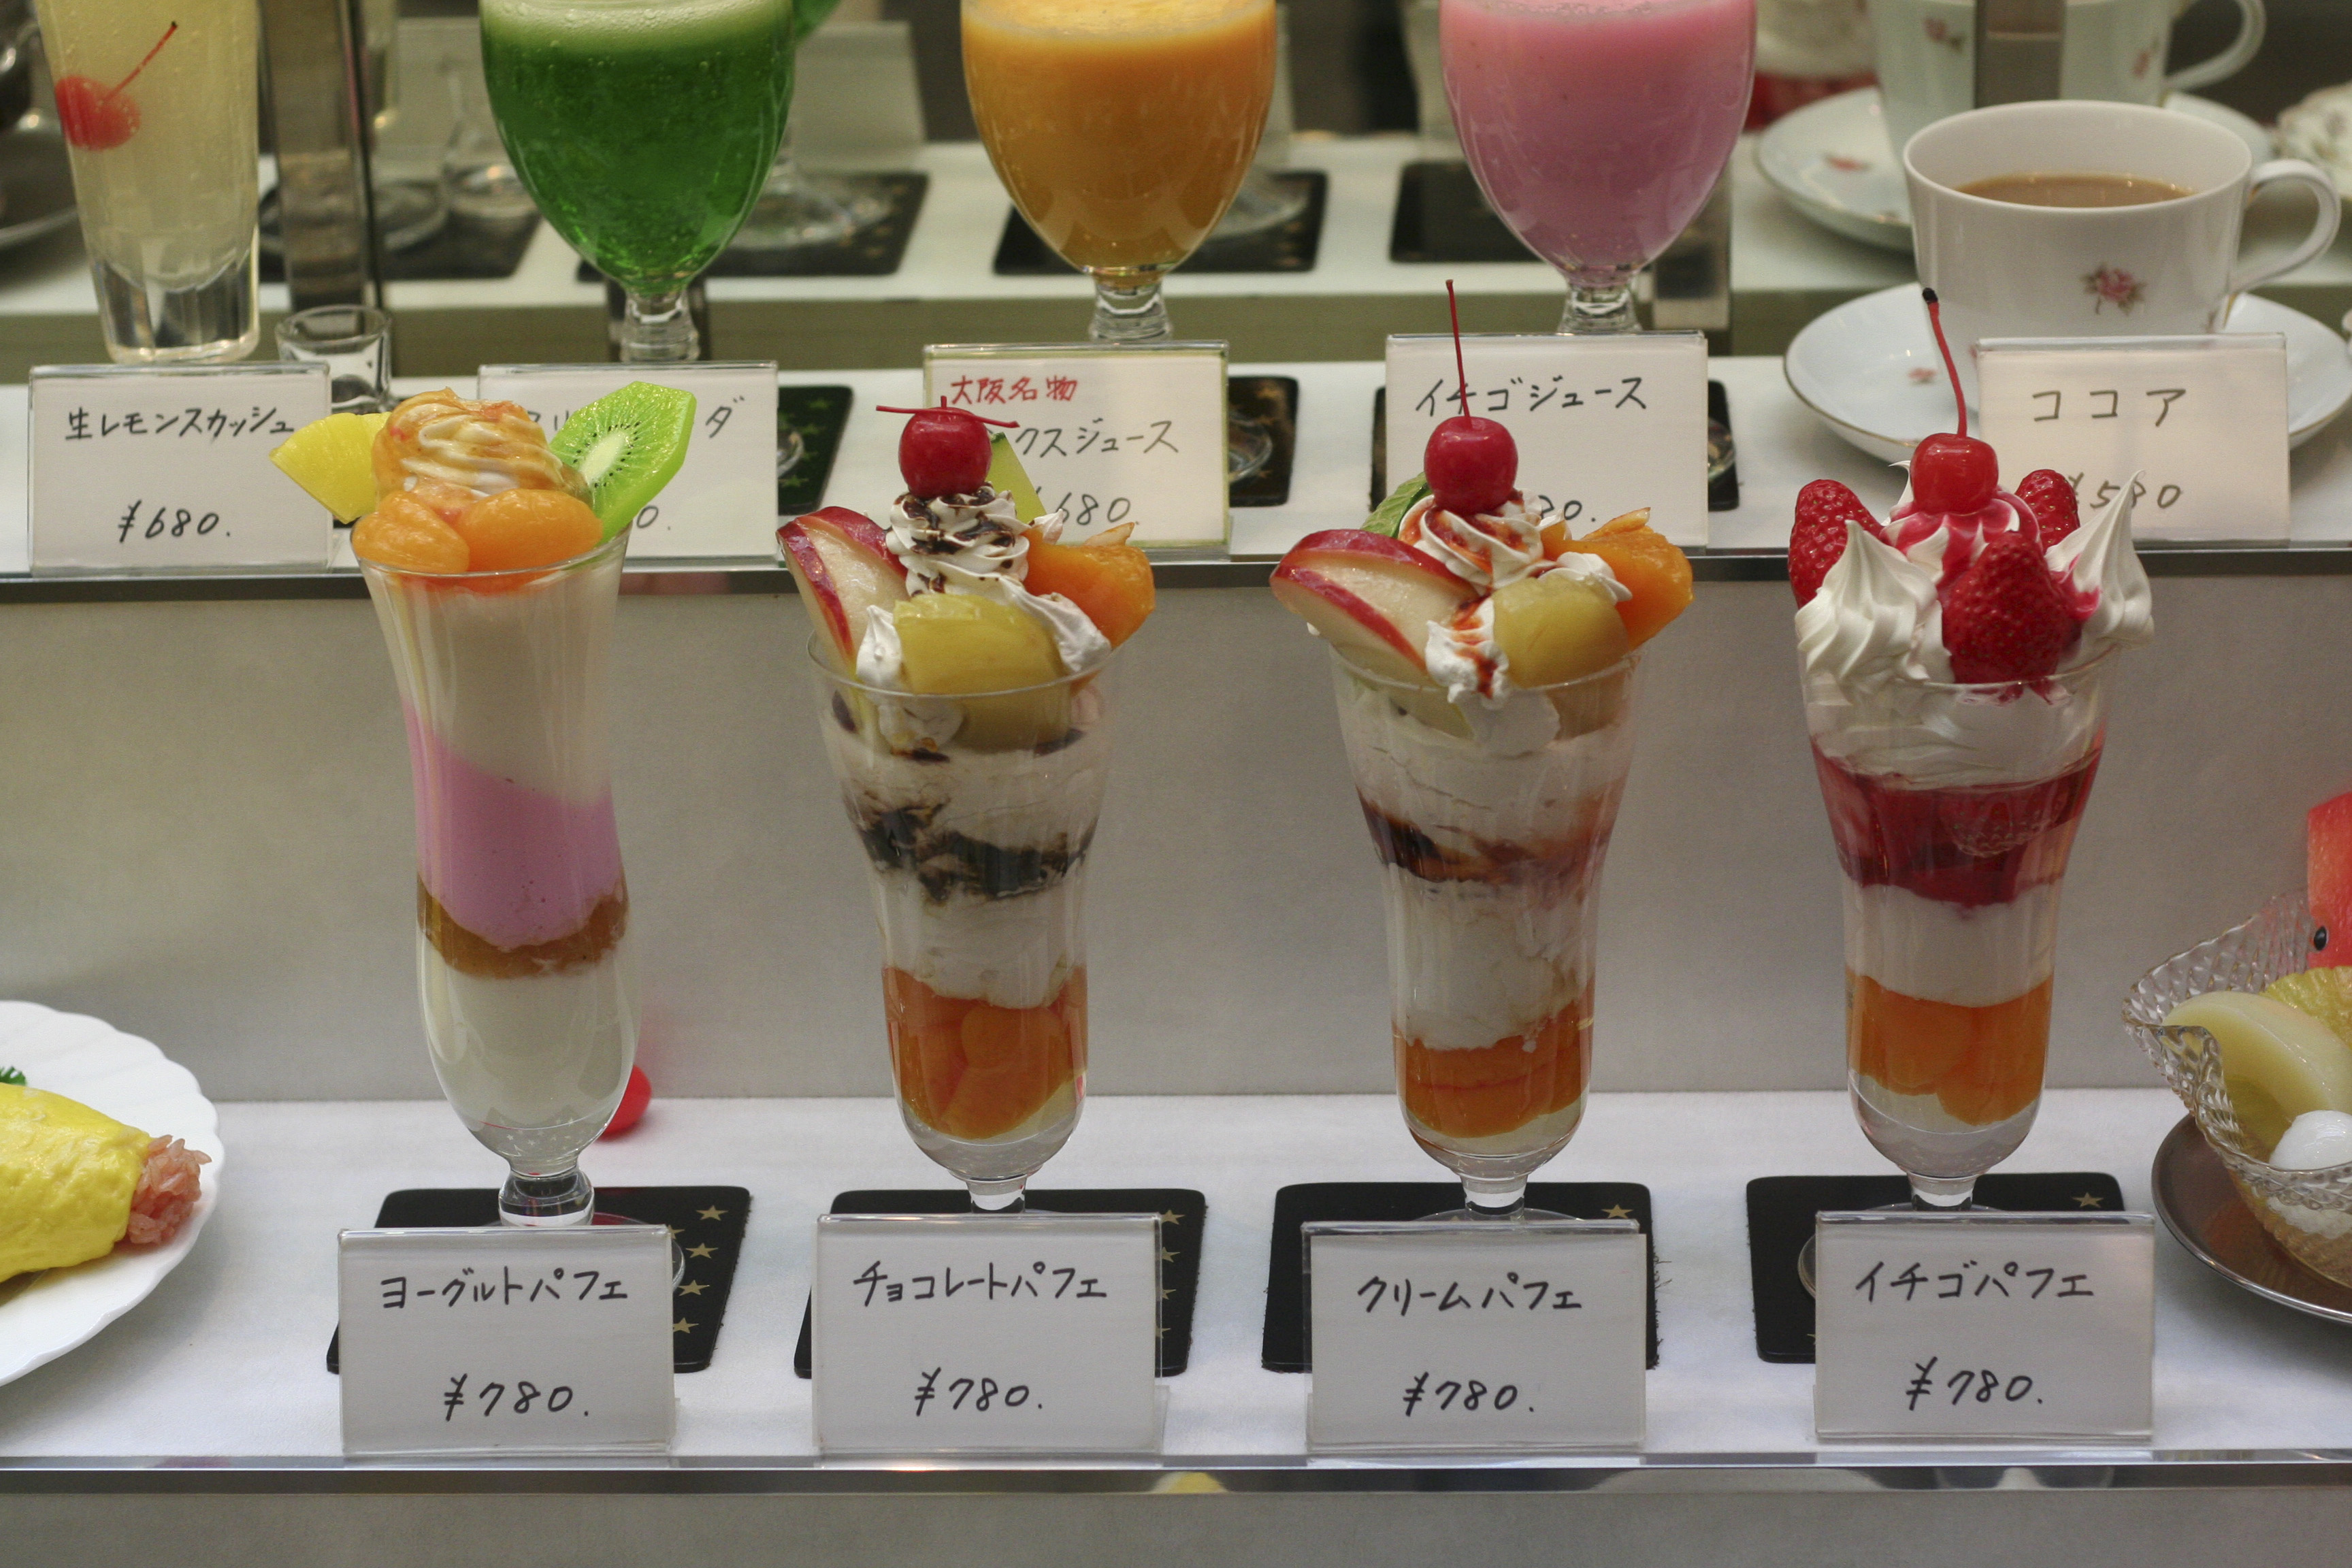 Parfait samples by pinguino in osaka%2c japan